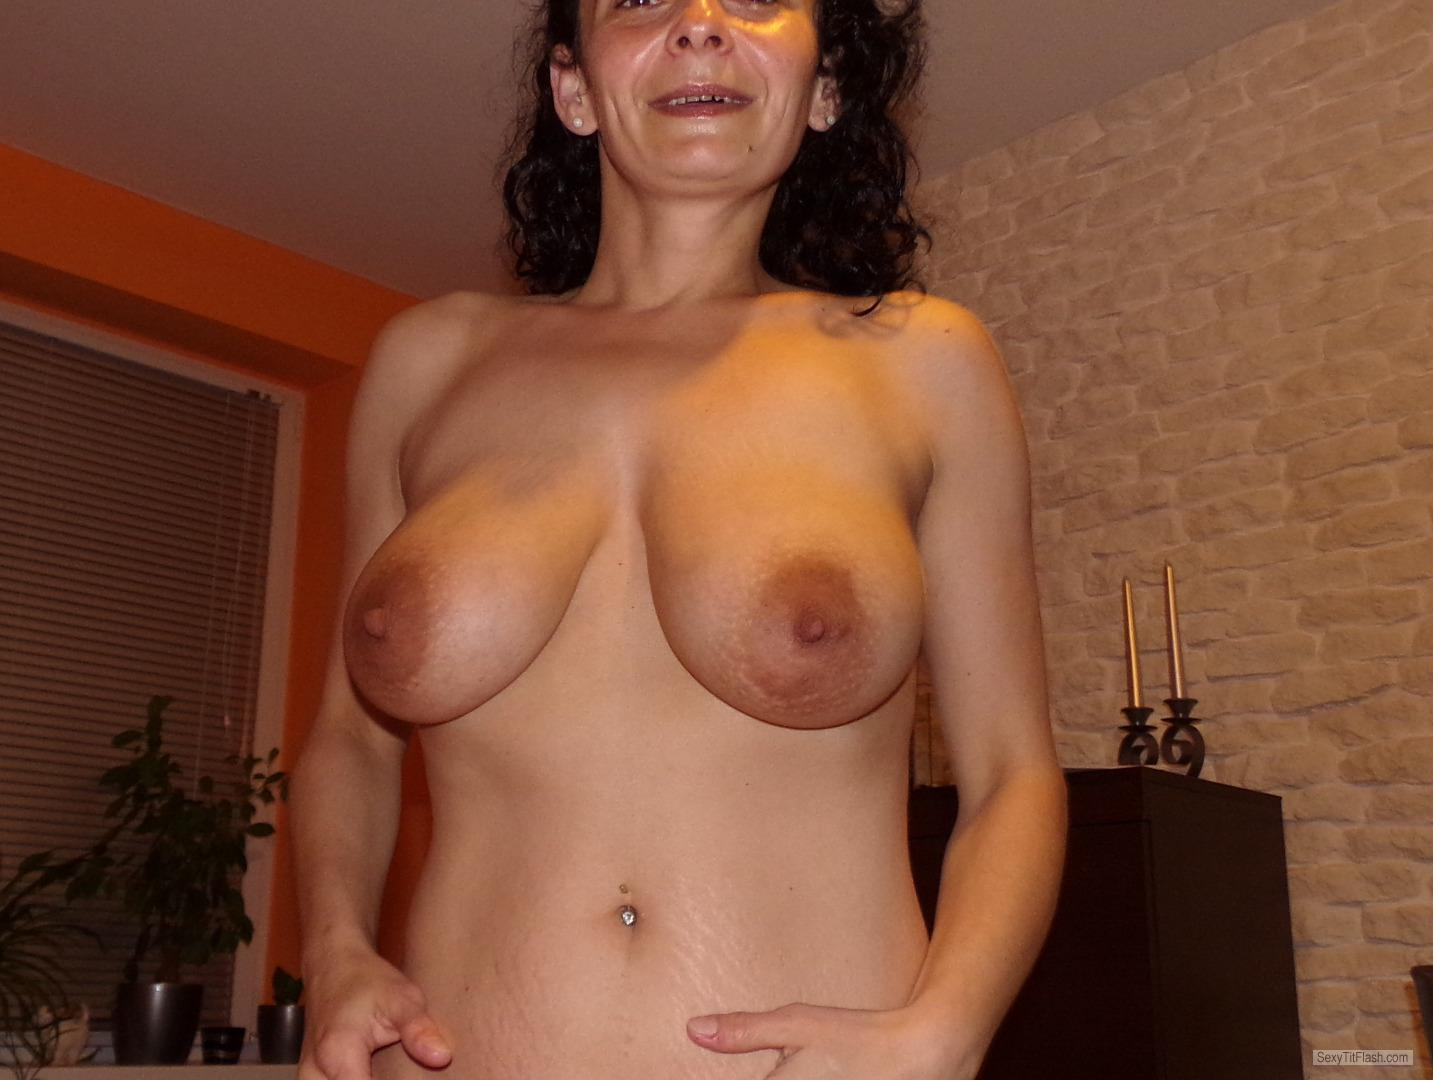 Tit Flash: My Very Big Tits - Topless Andzia from Poland